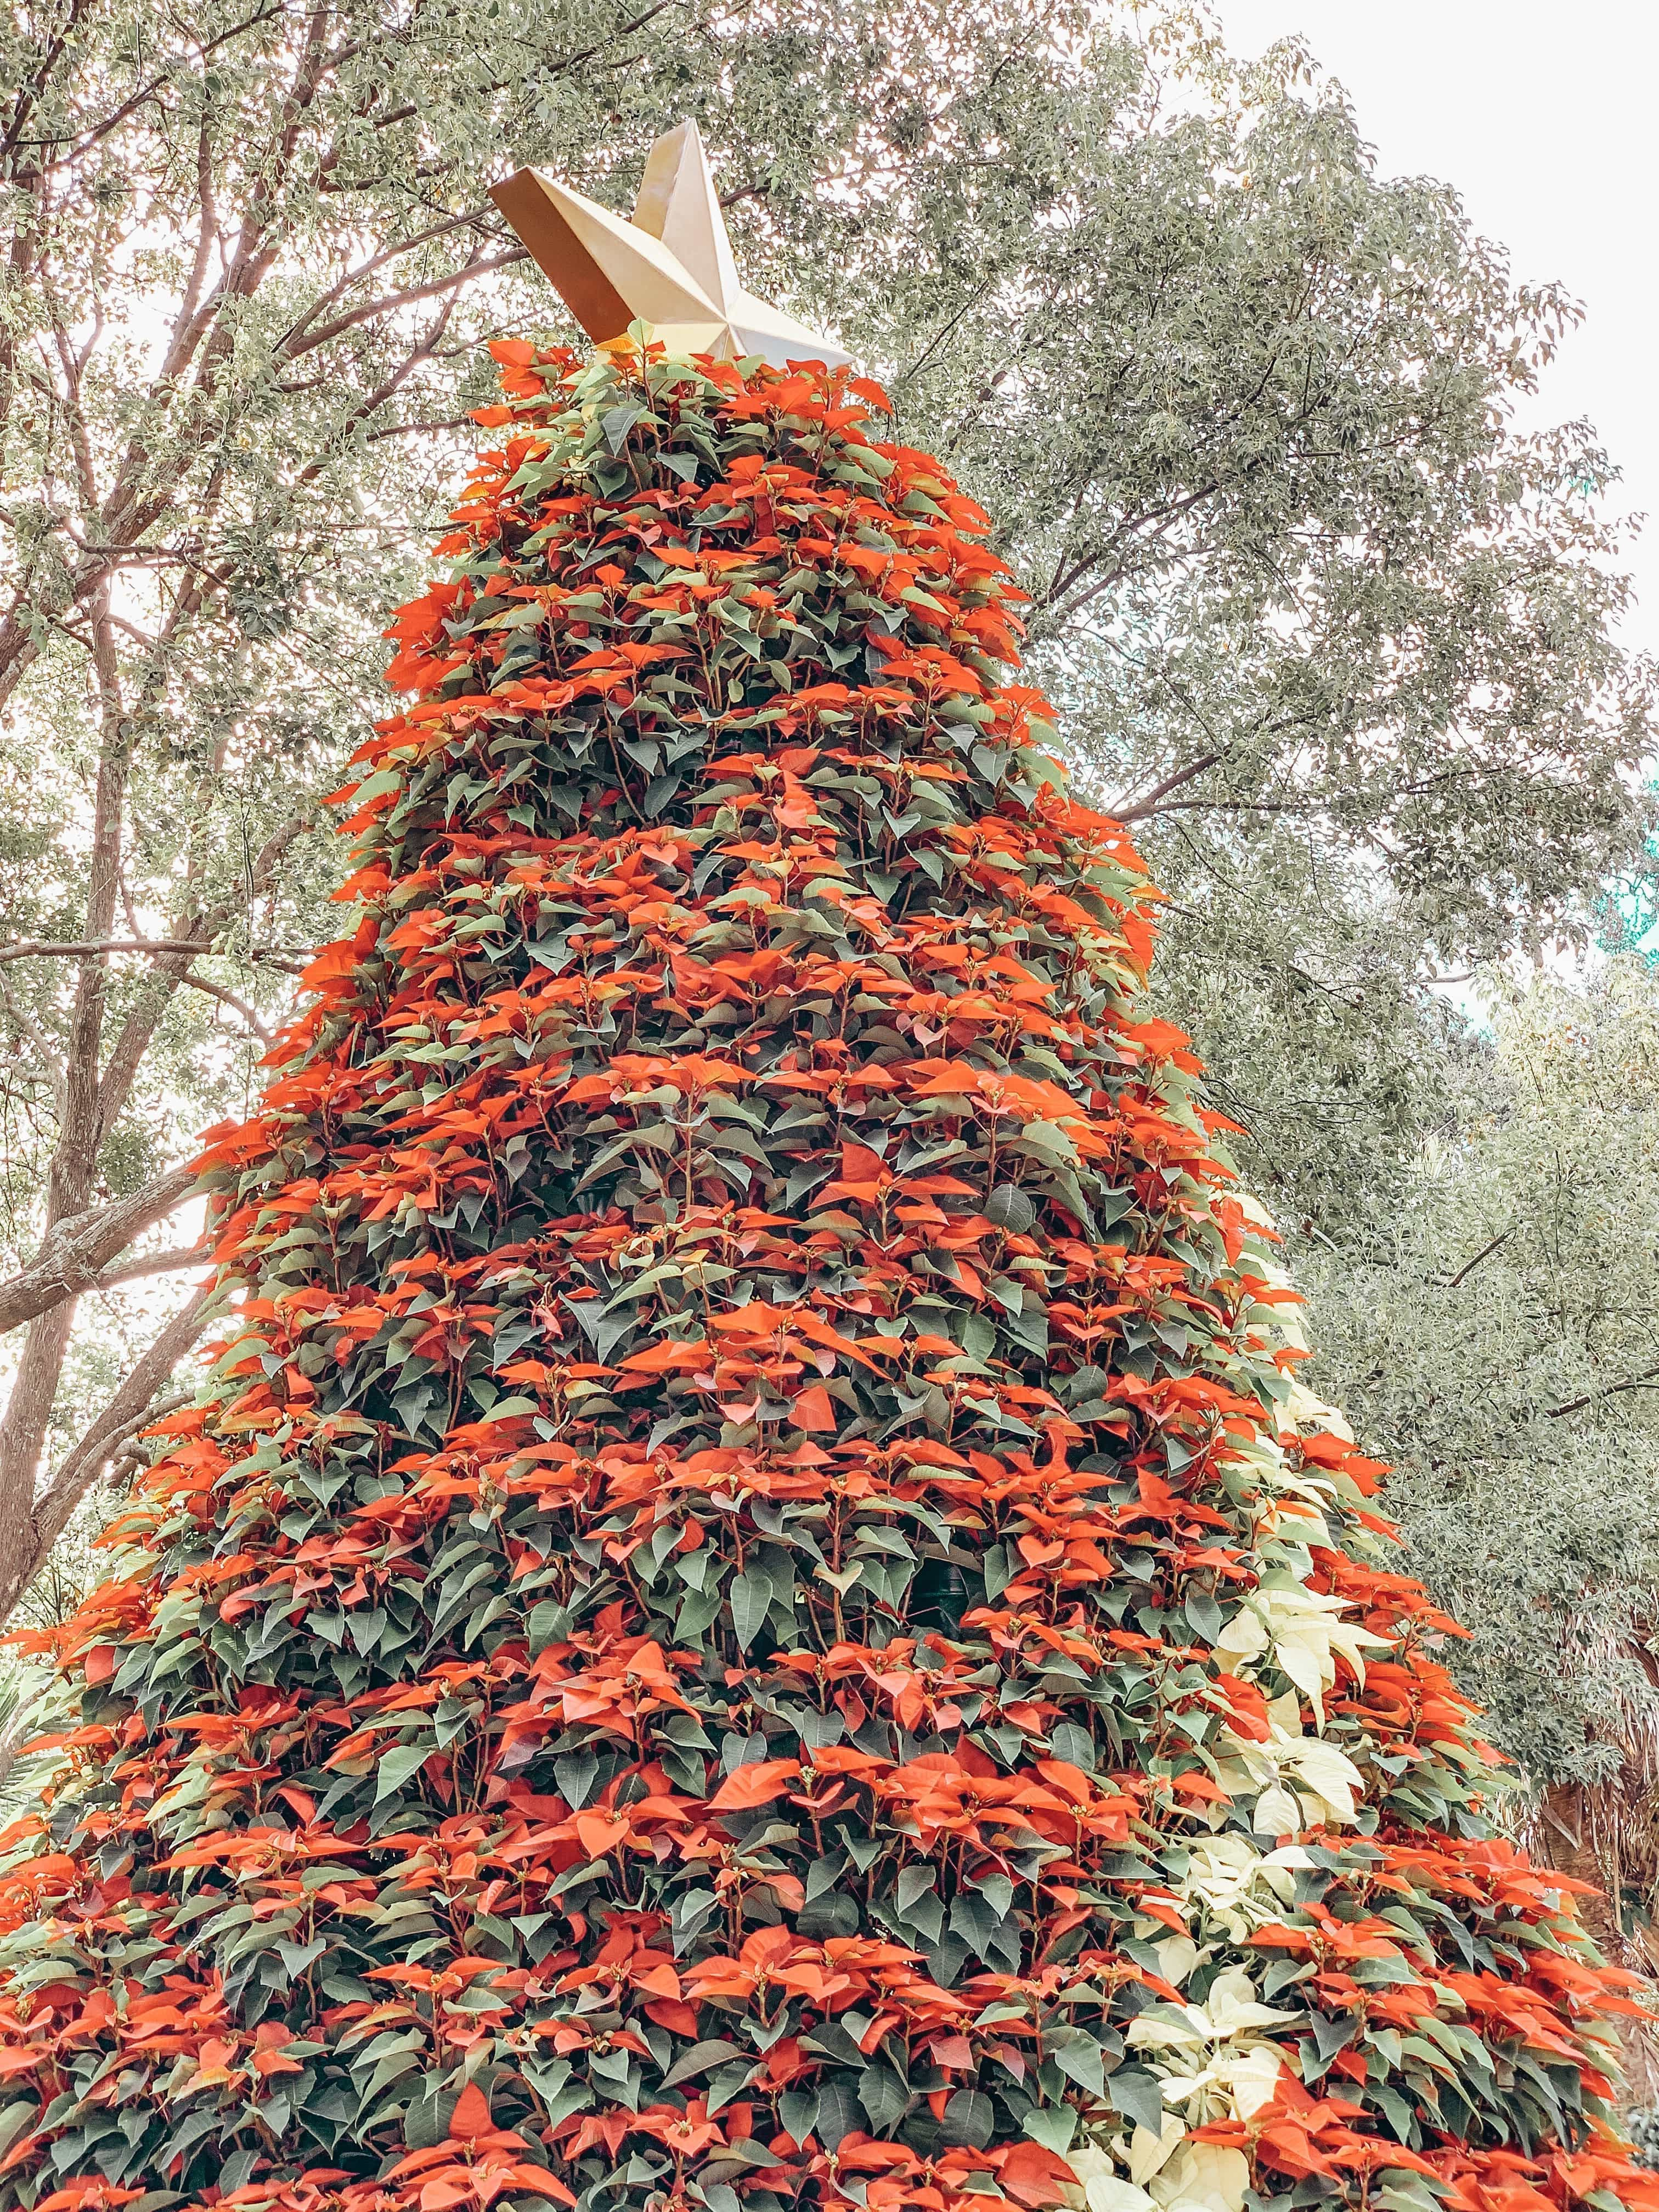 Christmas Town at Busch Gardens Tampa Bay